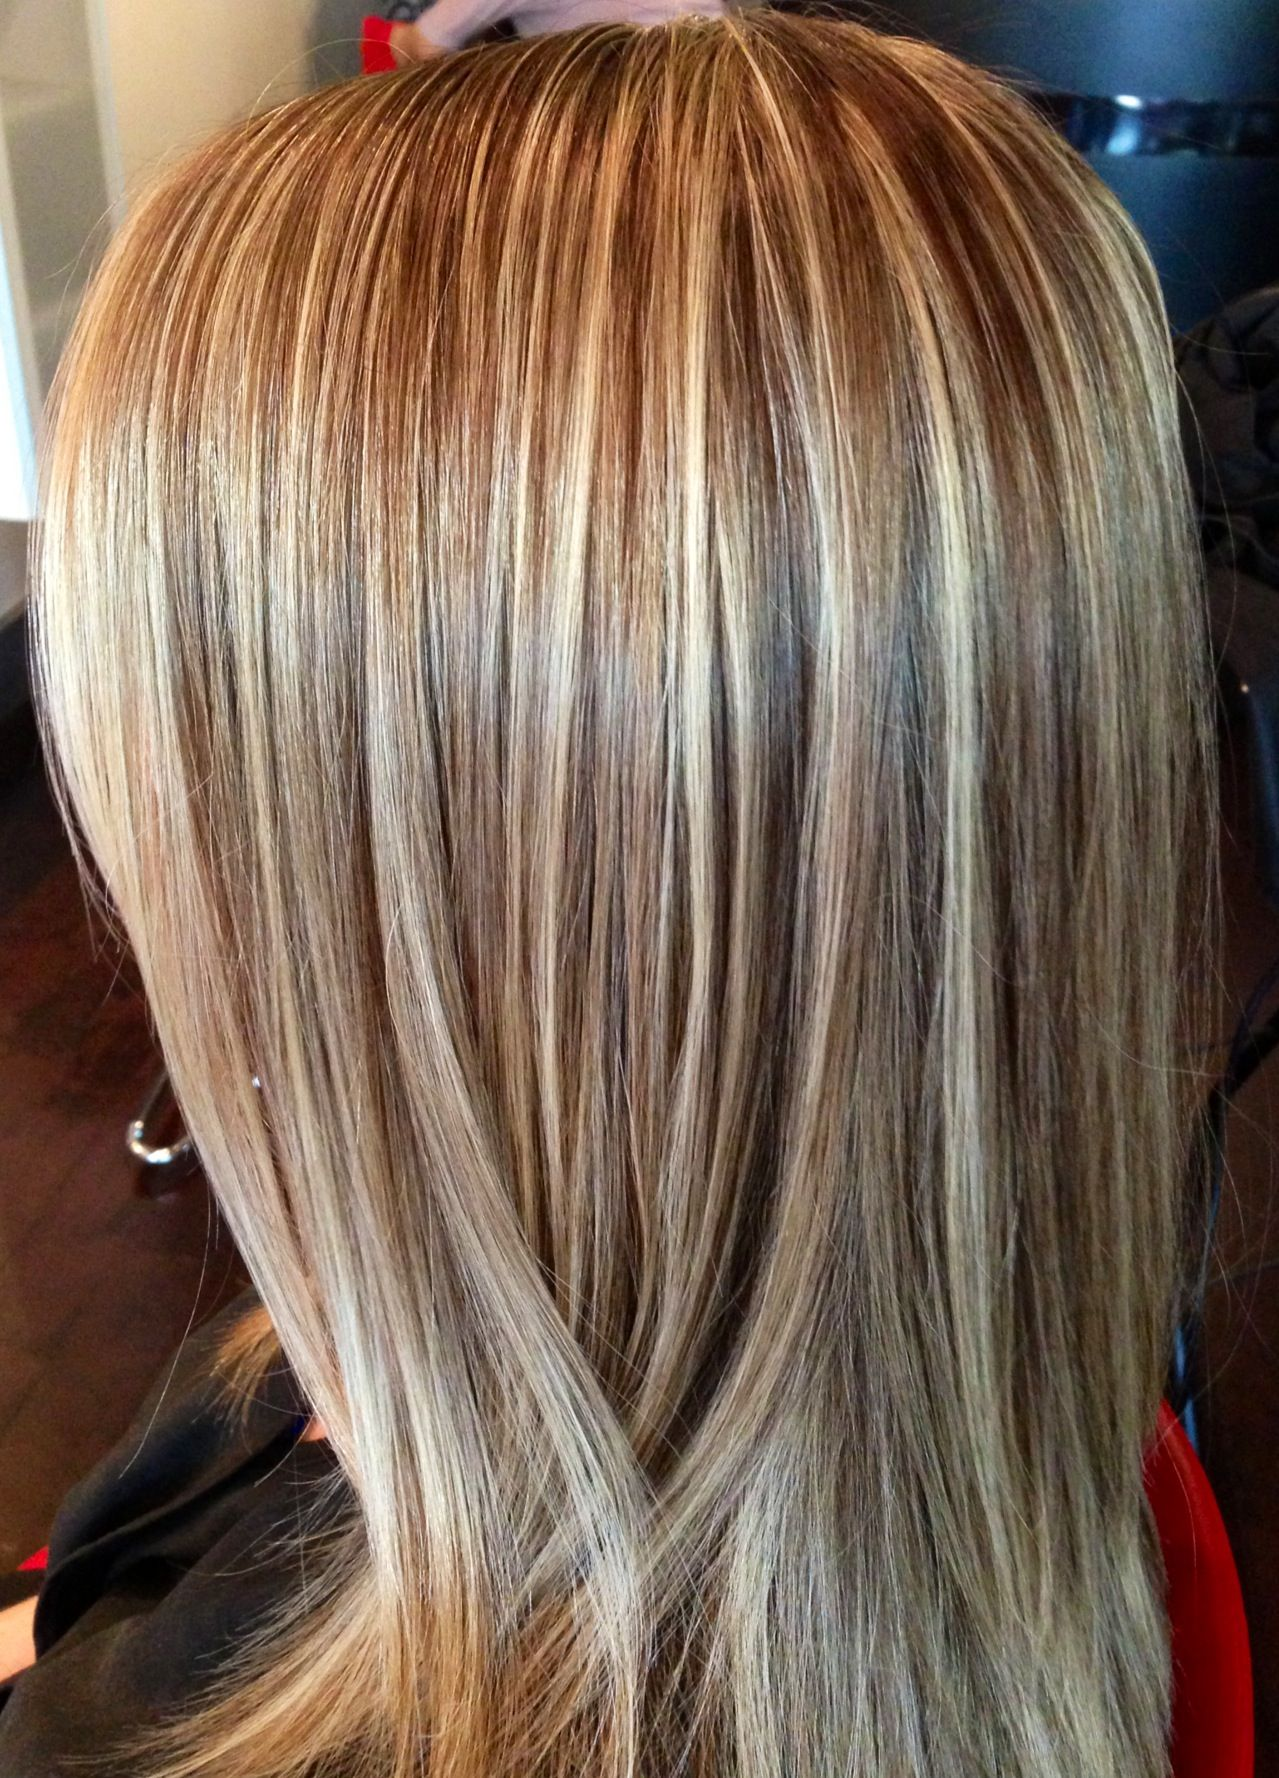 This Beautiful Hair Color Was Created By Foiling The Top